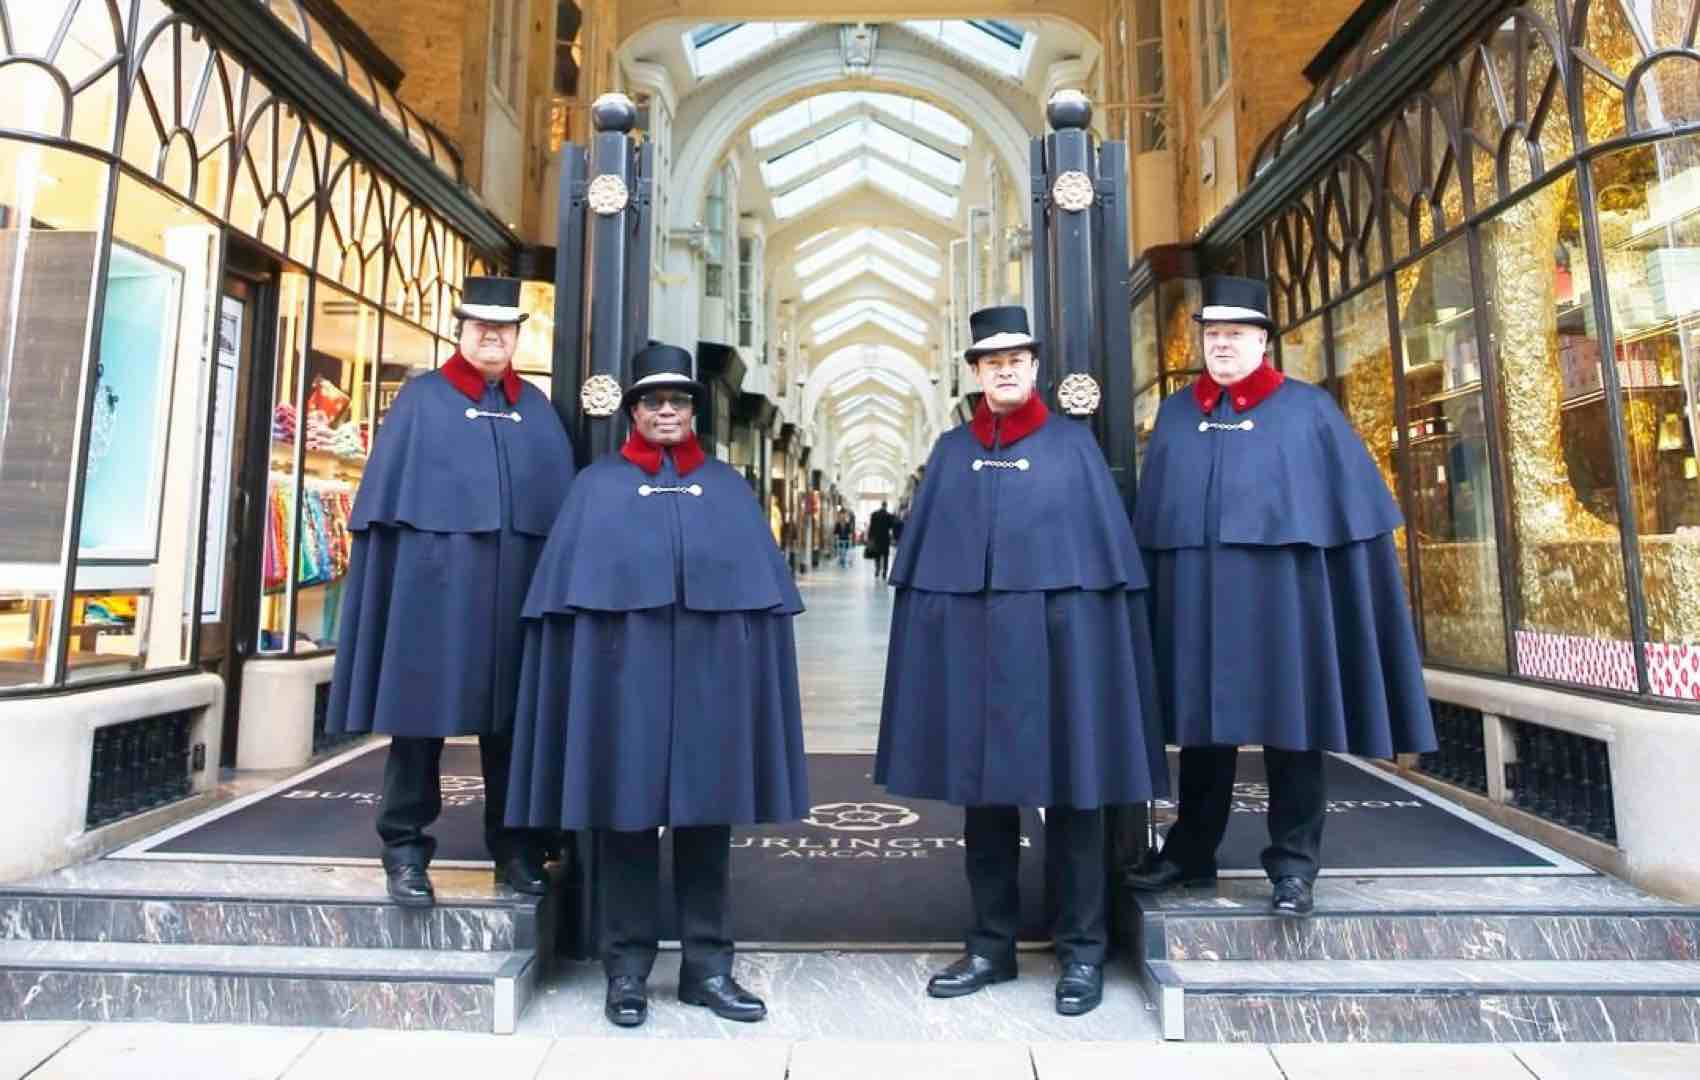 Meet the Beadles: The centuries-old private police force at Burlington Arcade, the world's swishest shopping mall